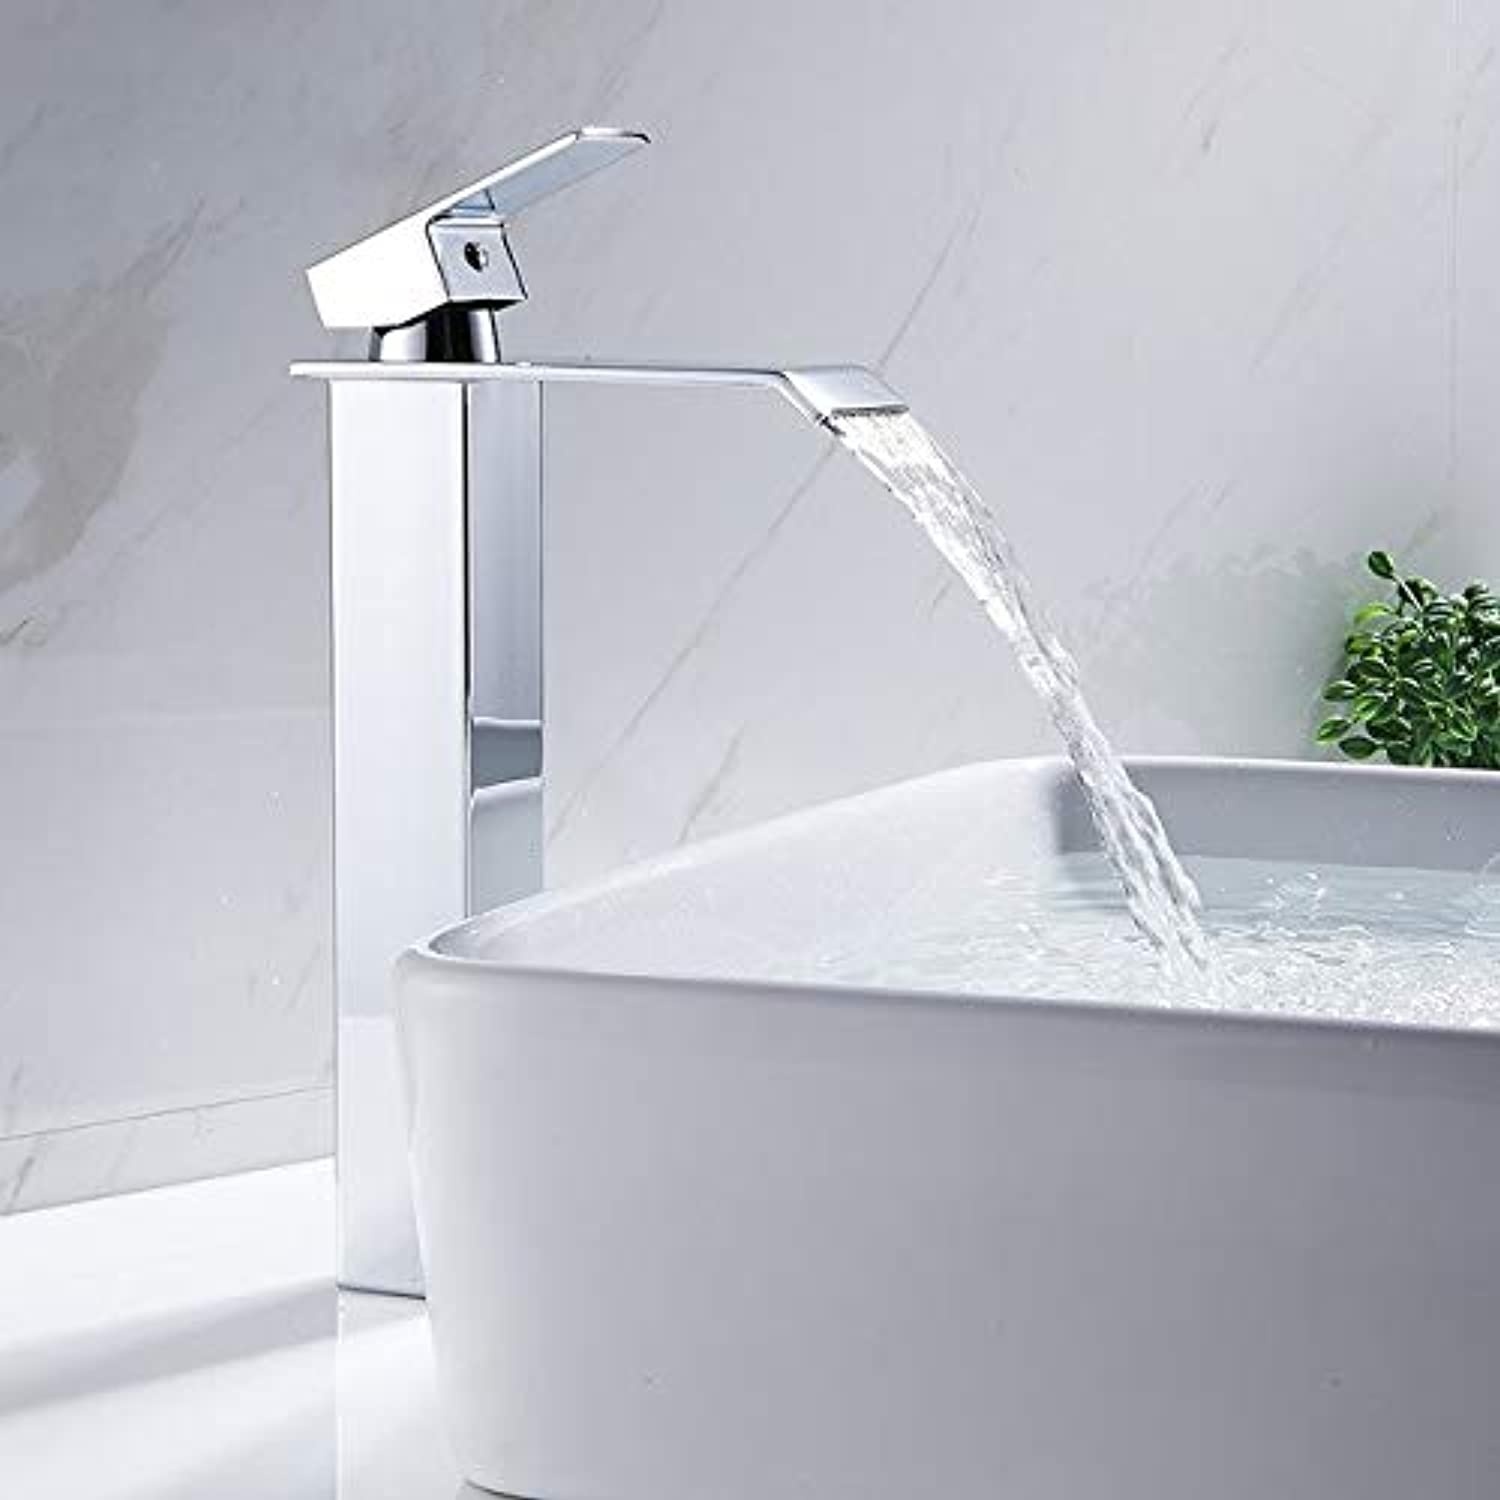 MinnUY Waterfall kitchen faucet mixer chrome-plated sink faucet deck installed cold and hot water faucet